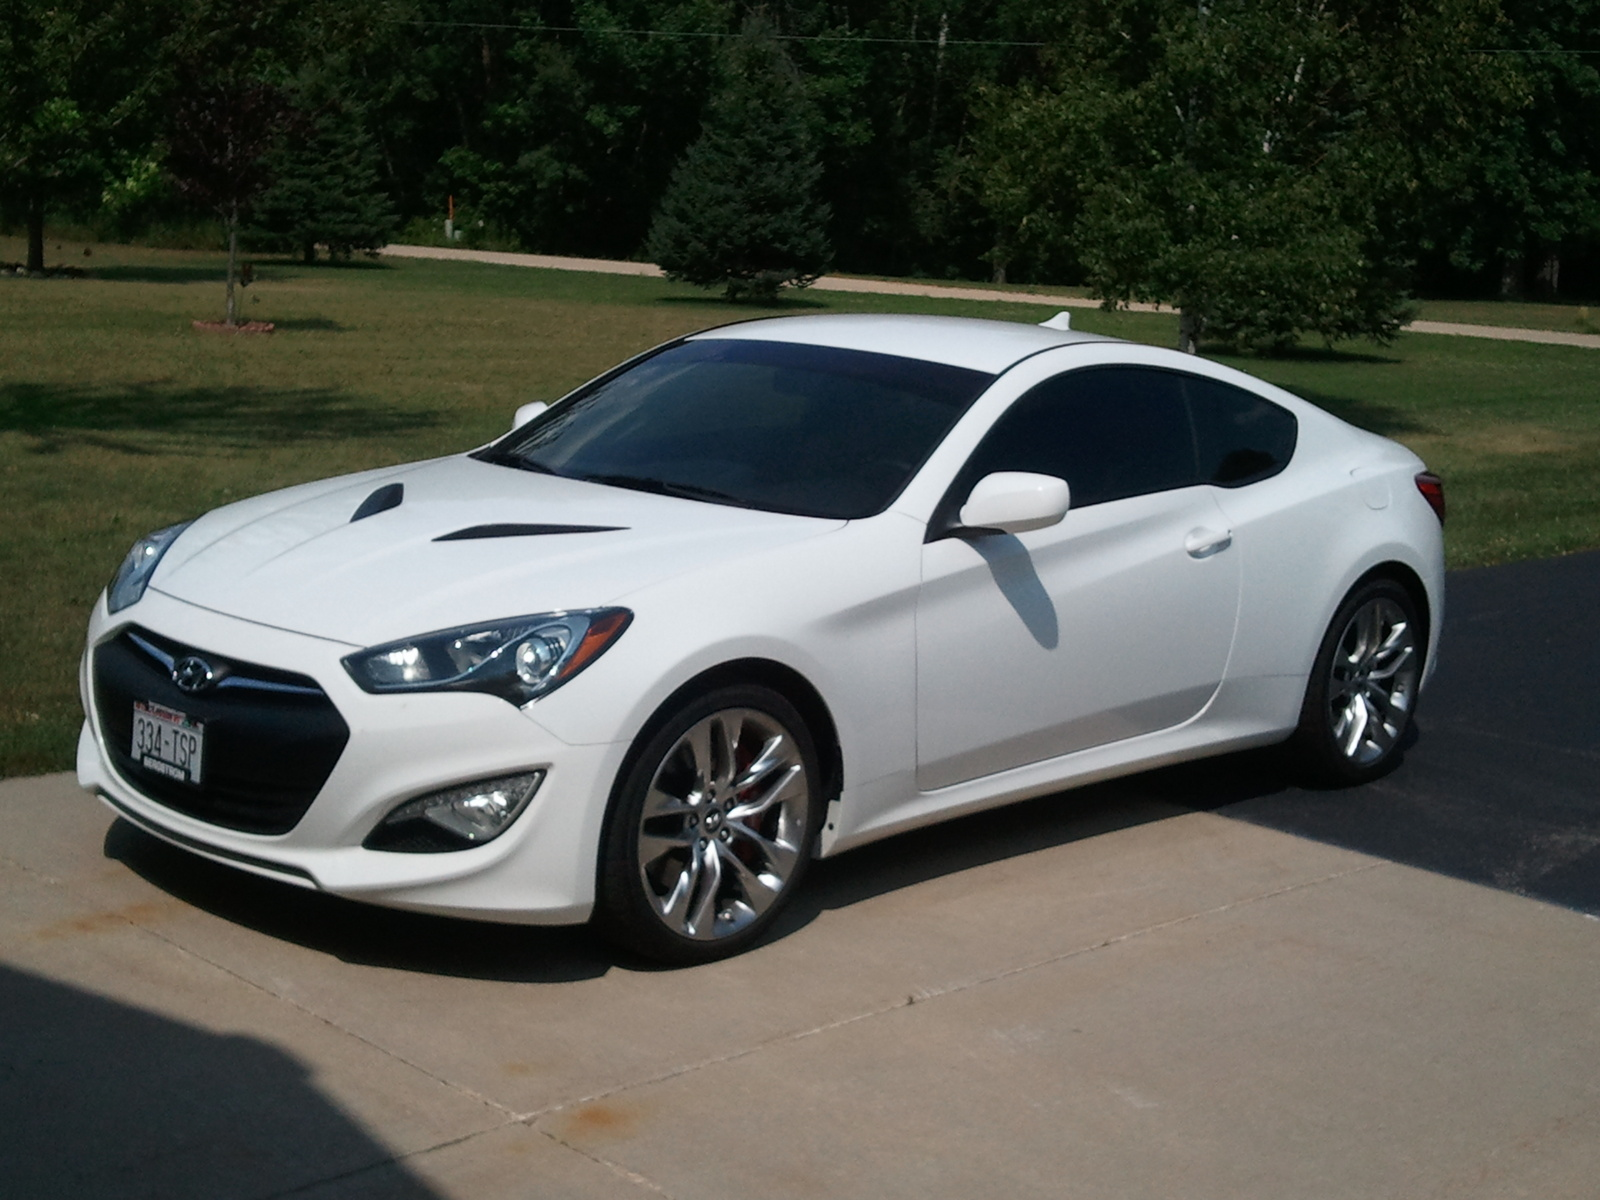 Hyundai Genesis Coupe: Driving Experience to Challenge the Competing